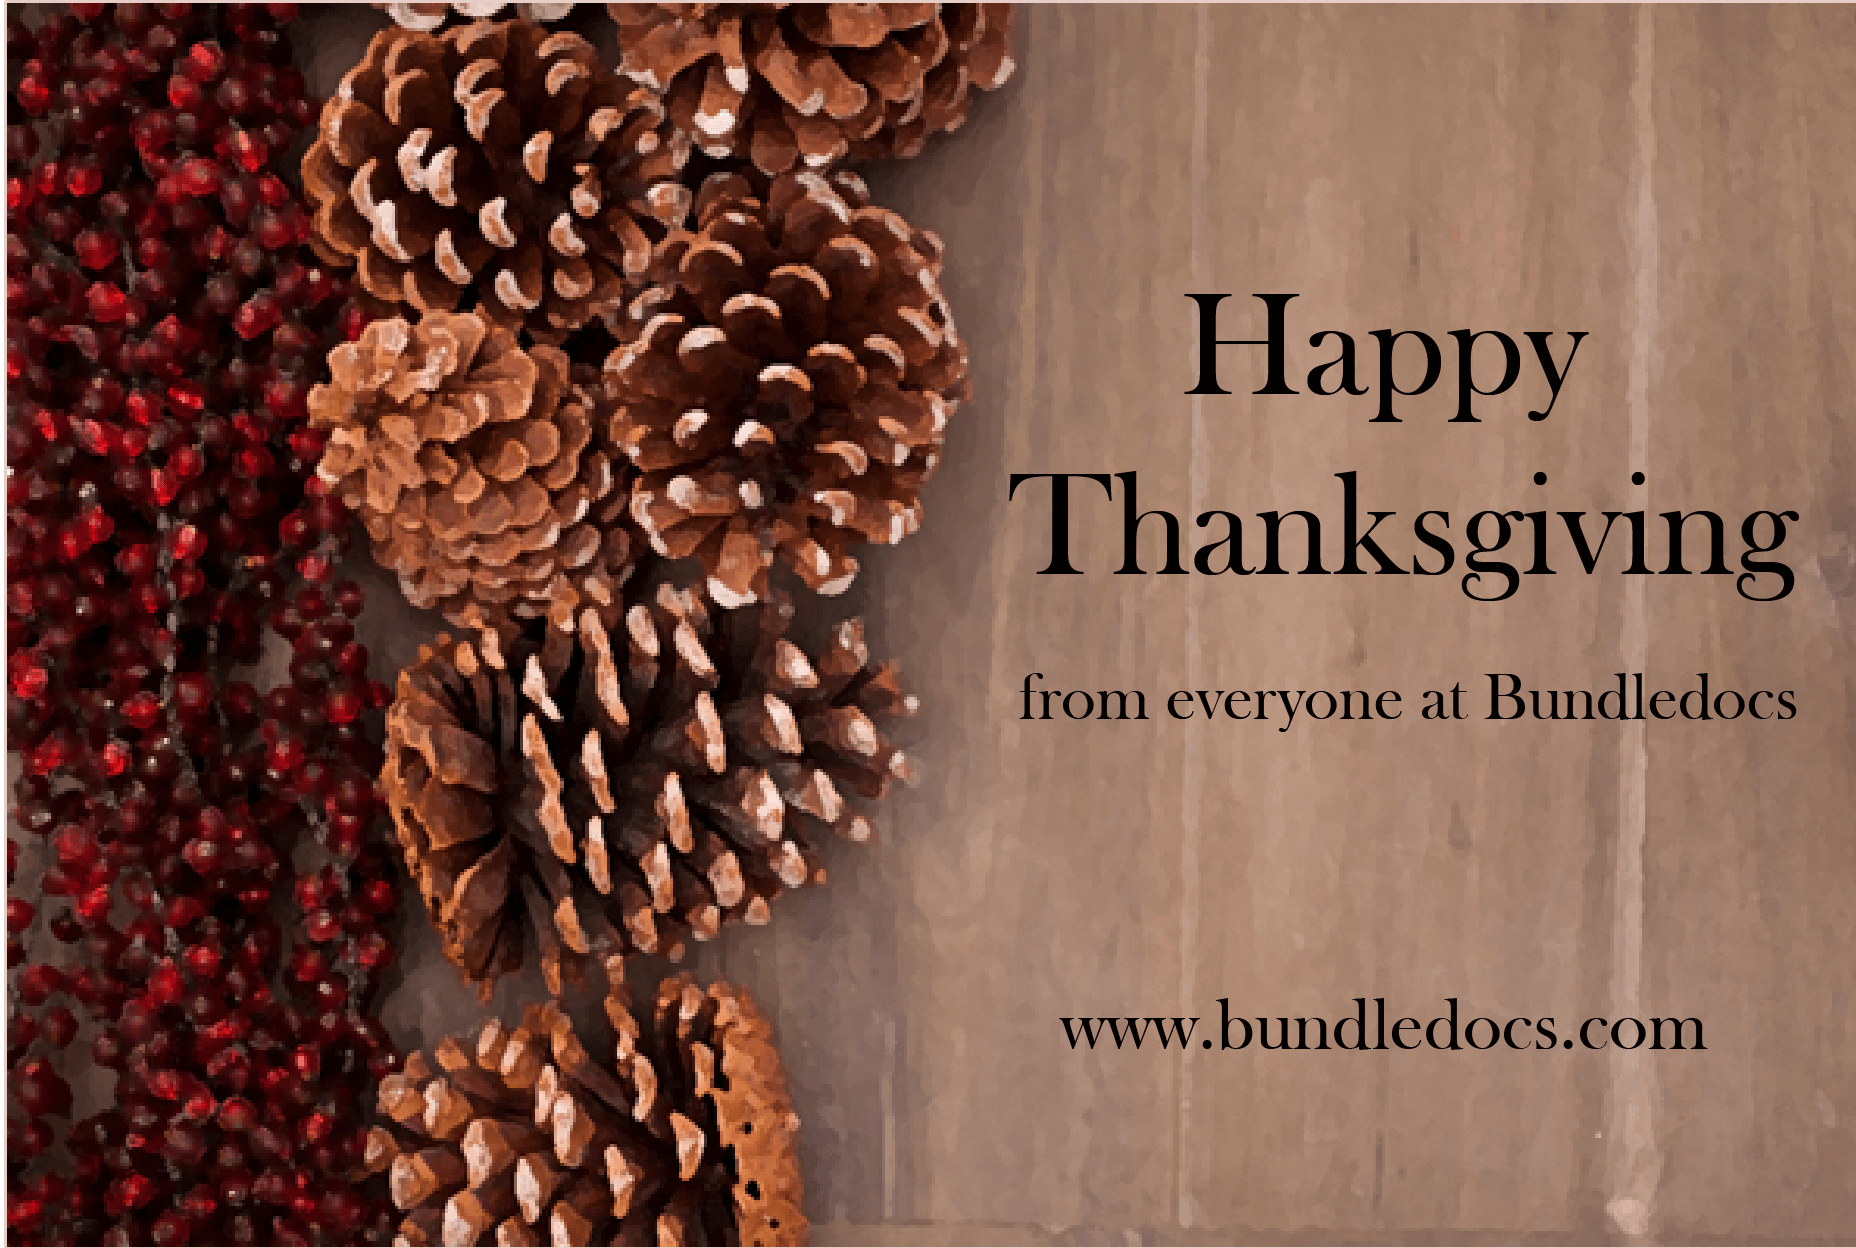 Happy_Thanksgiving_Bundledocs_2017.png